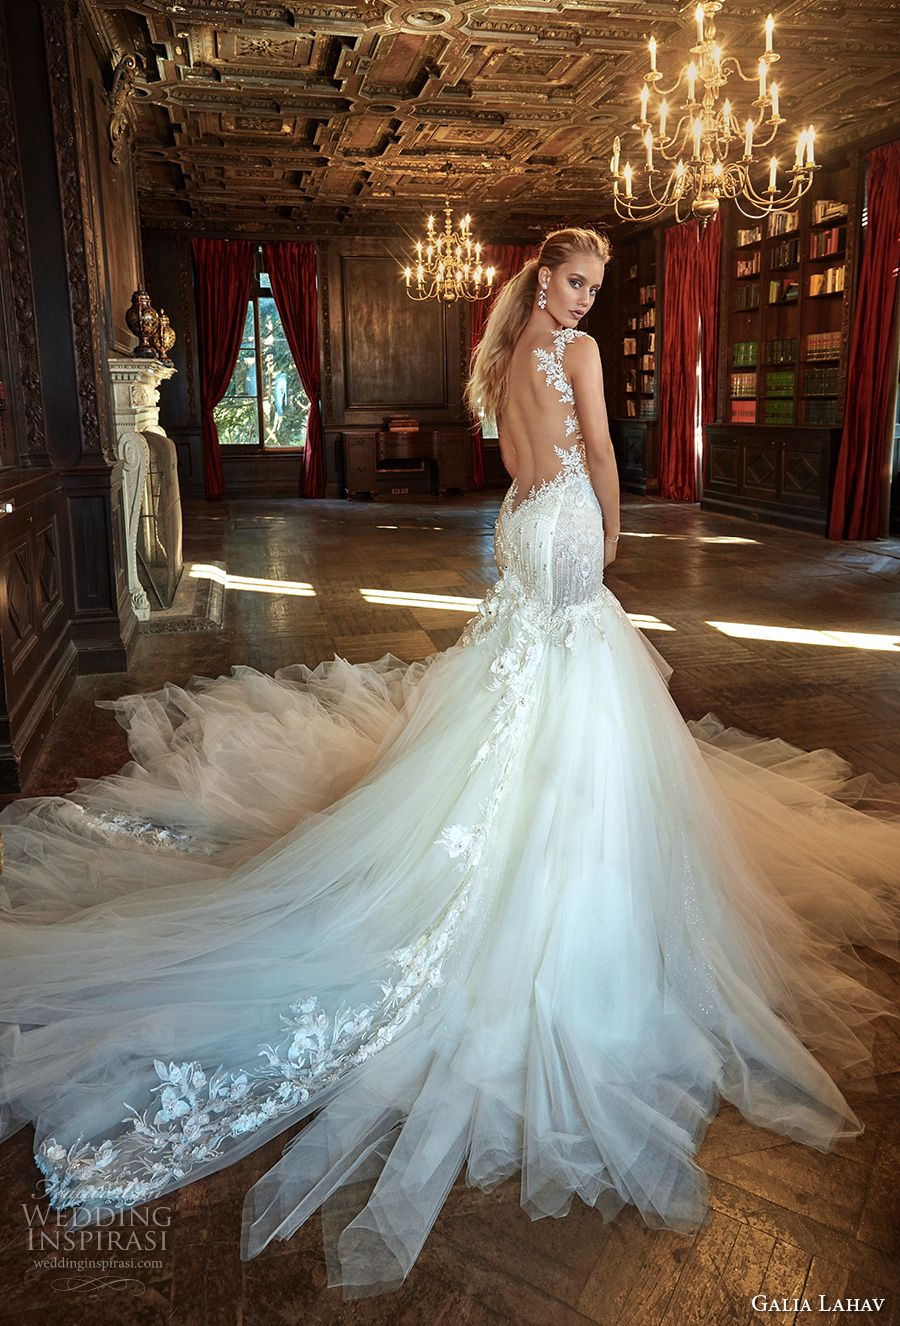 Galia Lahav Fall 2017 Bridal Sleeveless Strap Sweetheart Neckline Bustier Bodice Heavily Embellished Tulle Skirt Y Mermaid Wedding Dress Low Back